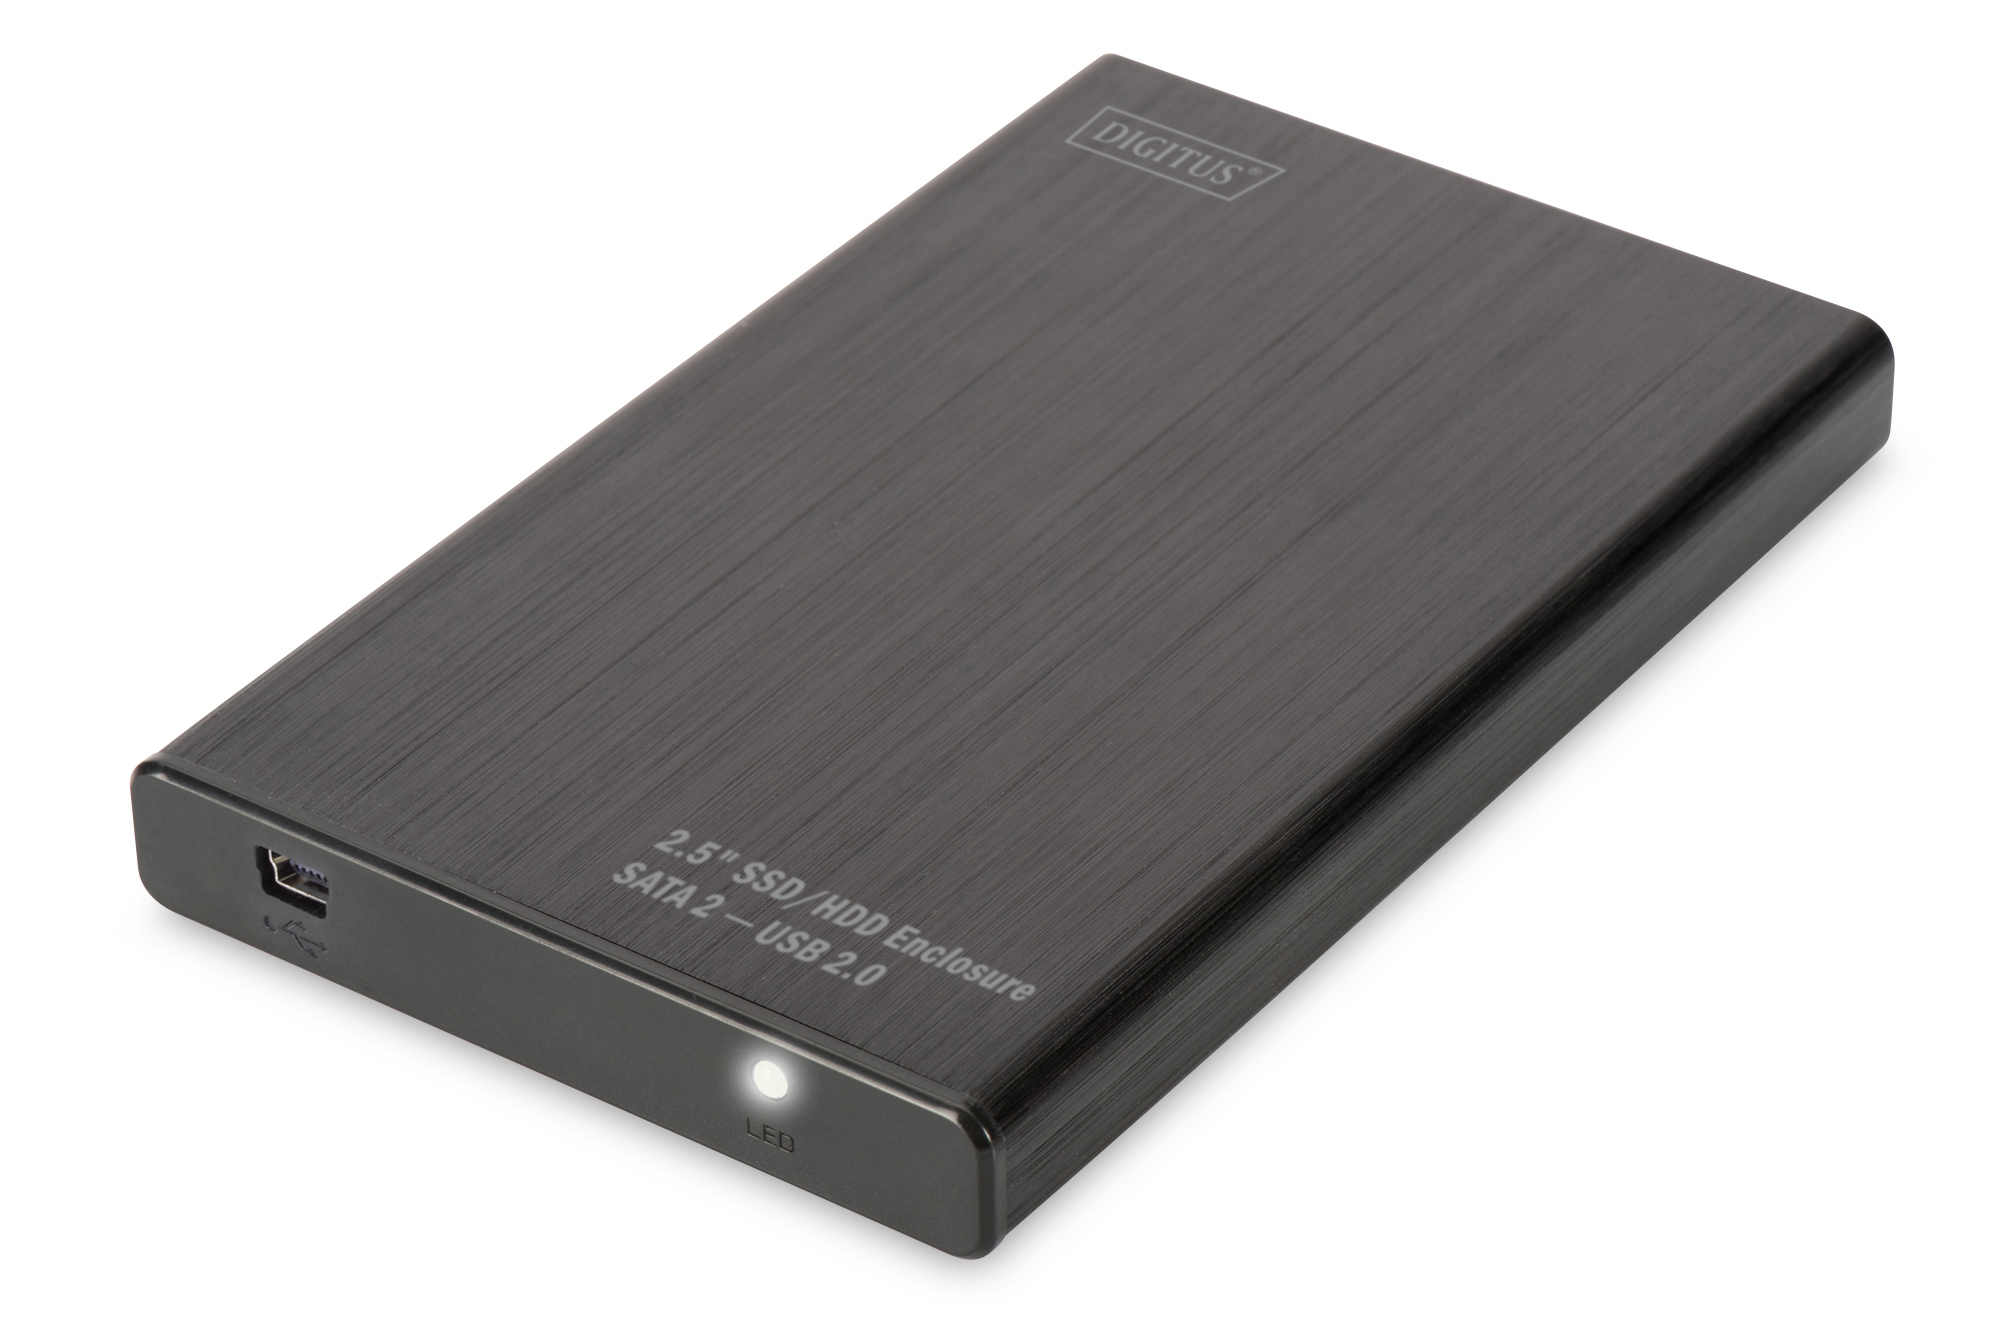 DIGITUS BOX ESTERNO USB 2.0 PER HDD/SSD 2,5